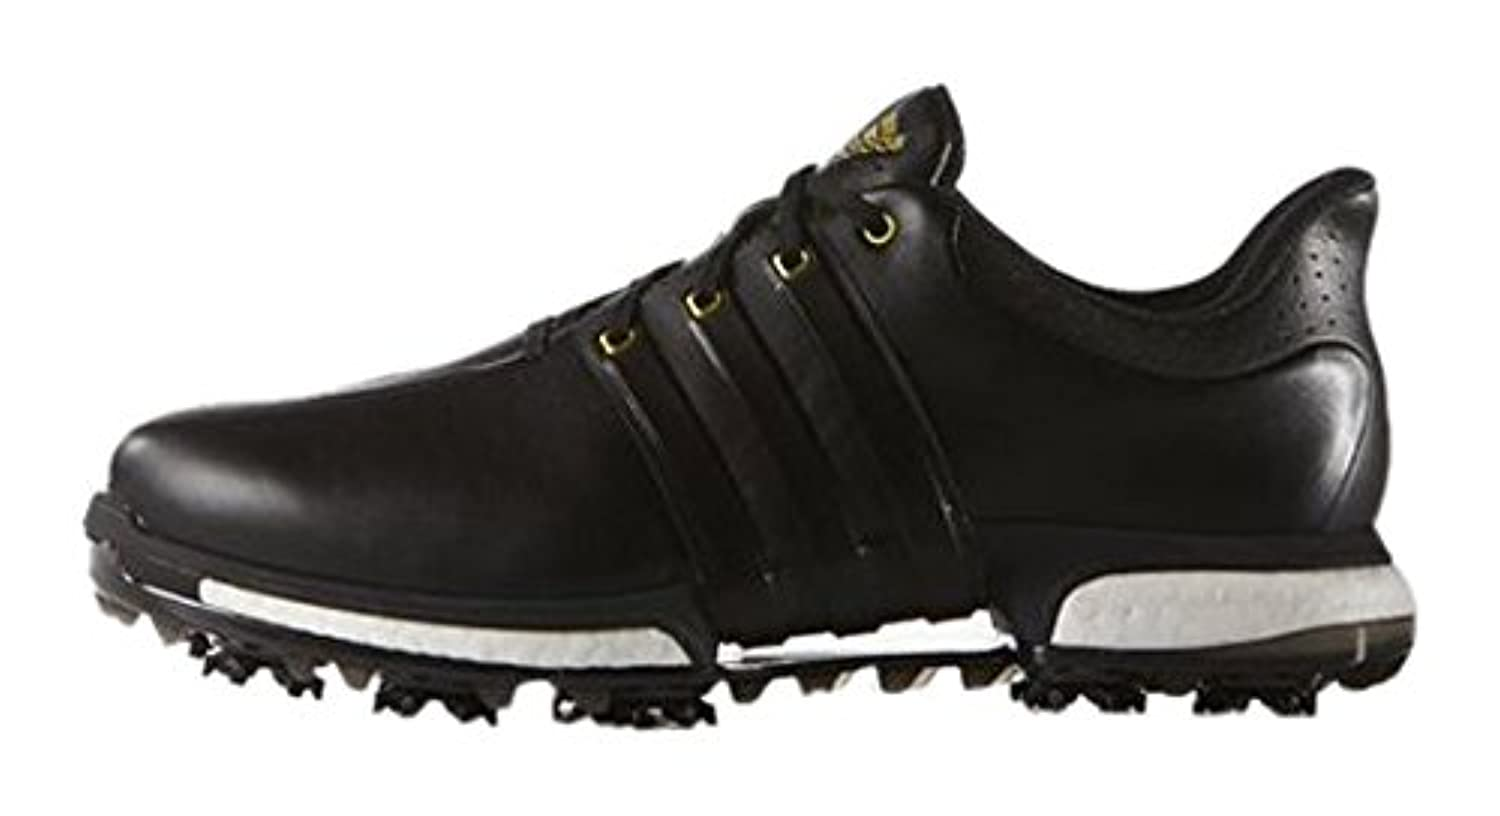 Adidas Tour 360 Boost Wd, Men Golf Shoes, White (White/Flash Pink /Mineral Blue), 7 UK (40 2/3 EU)